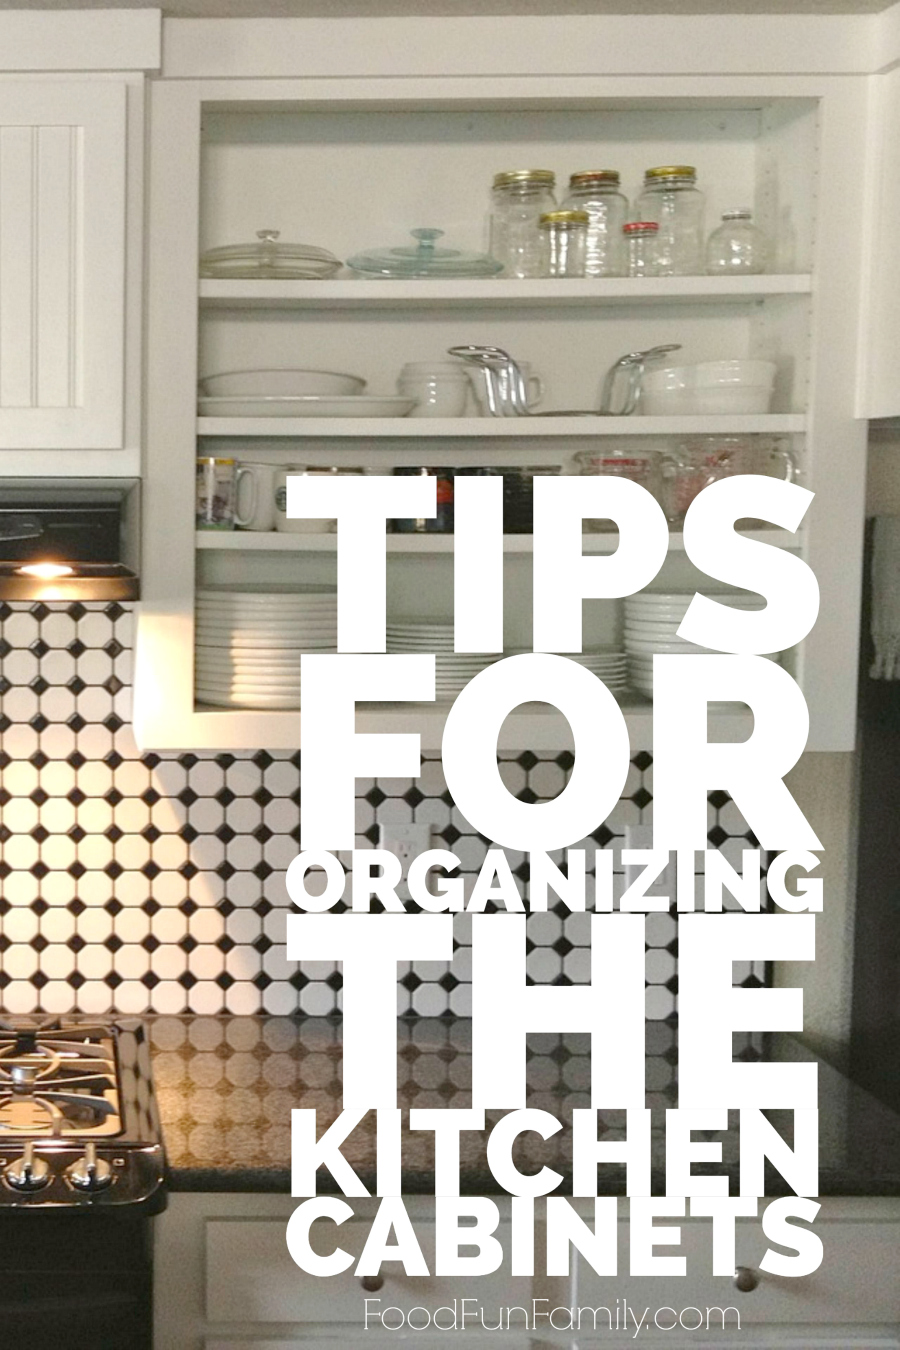 Tips for organizing the kitchen cabinets (and keeping them organized) from Food Fun Family